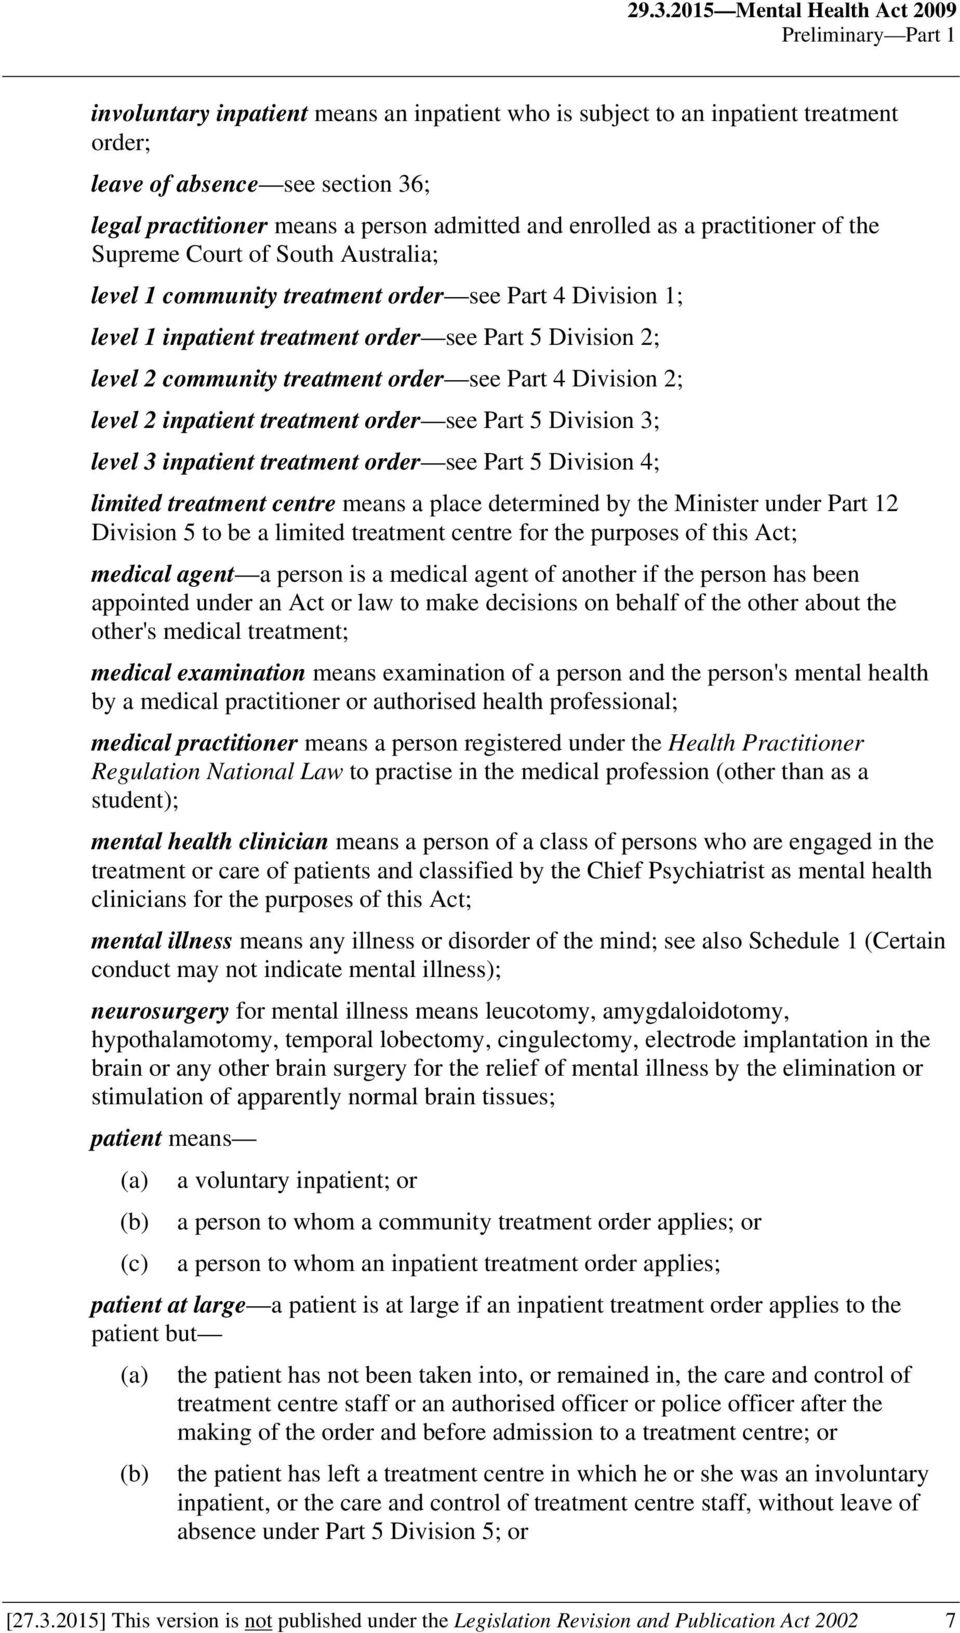 Division 2; level 2 community treatment order see Part 4 Division 2; level 2 inpatient treatment order see Part 5 Division 3; level 3 inpatient treatment order see Part 5 Division 4; limited